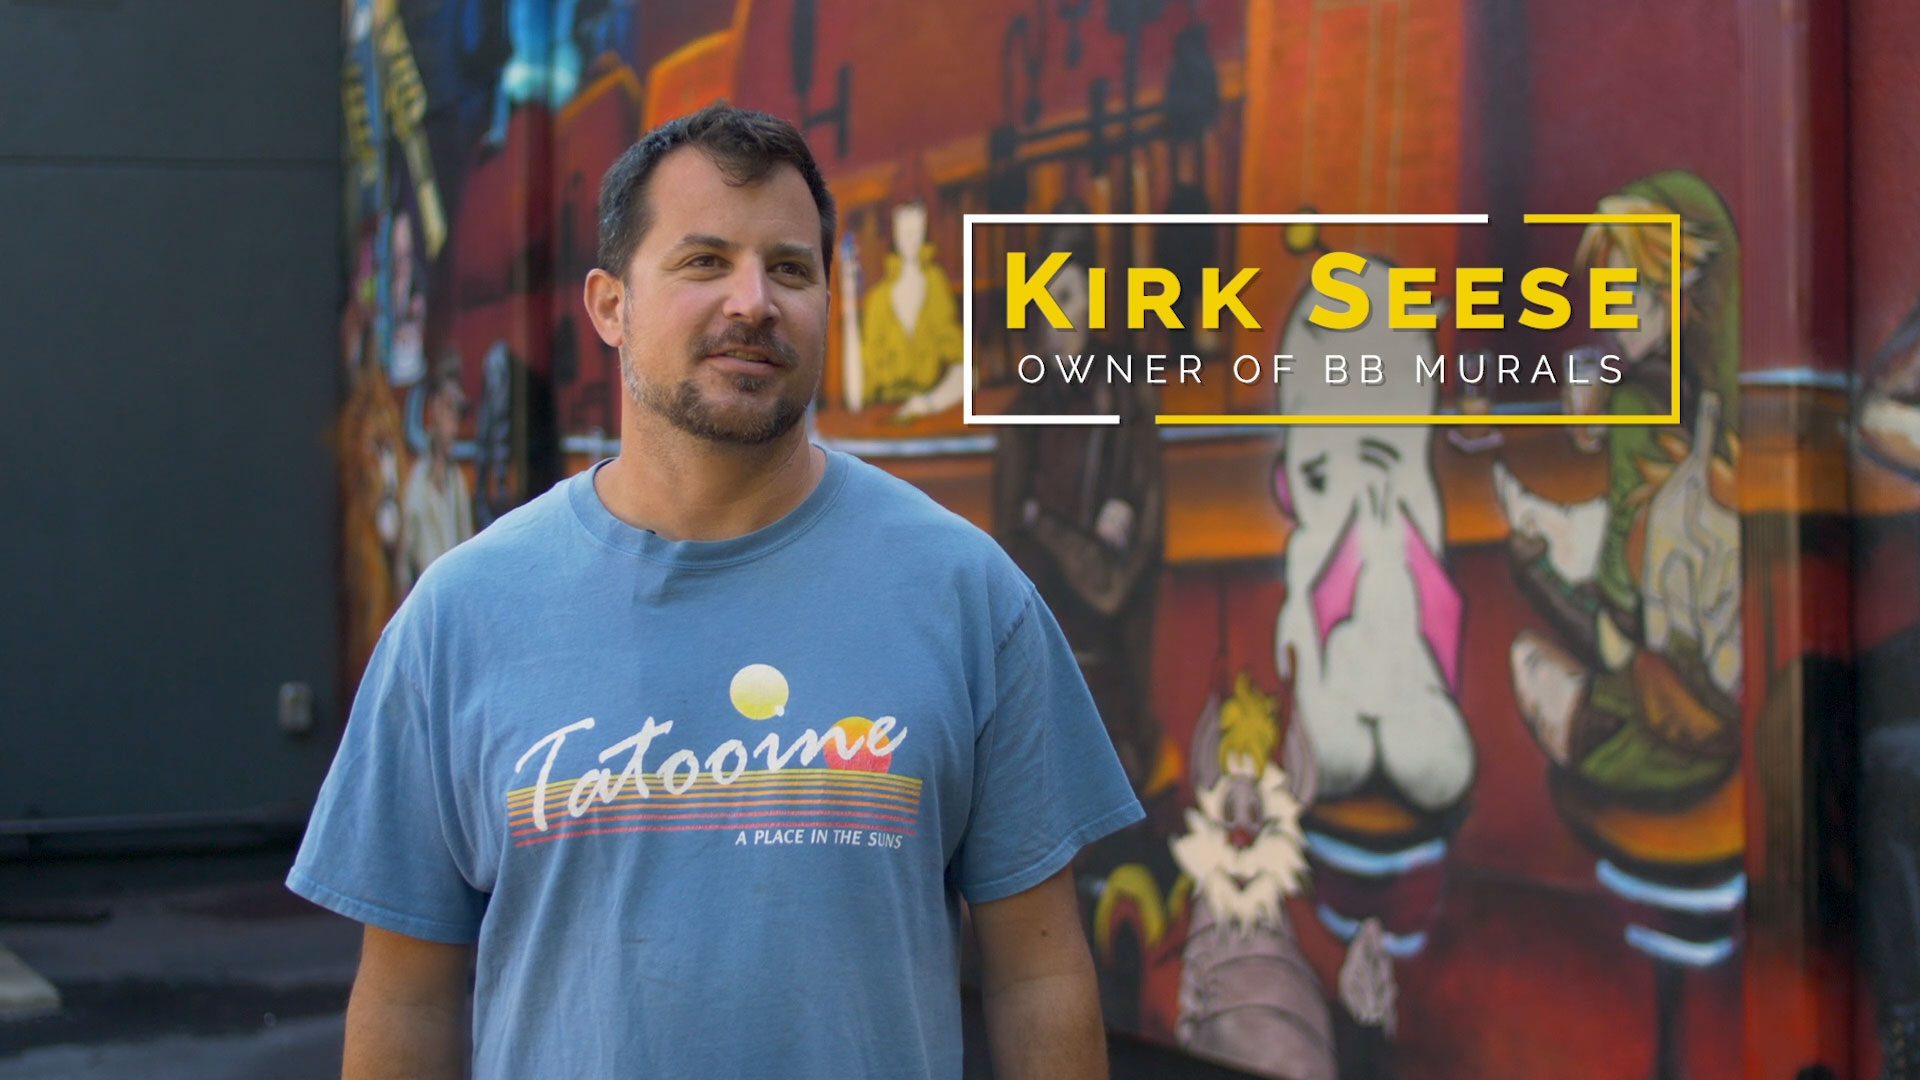 Kirk Seese owner of BB Murals